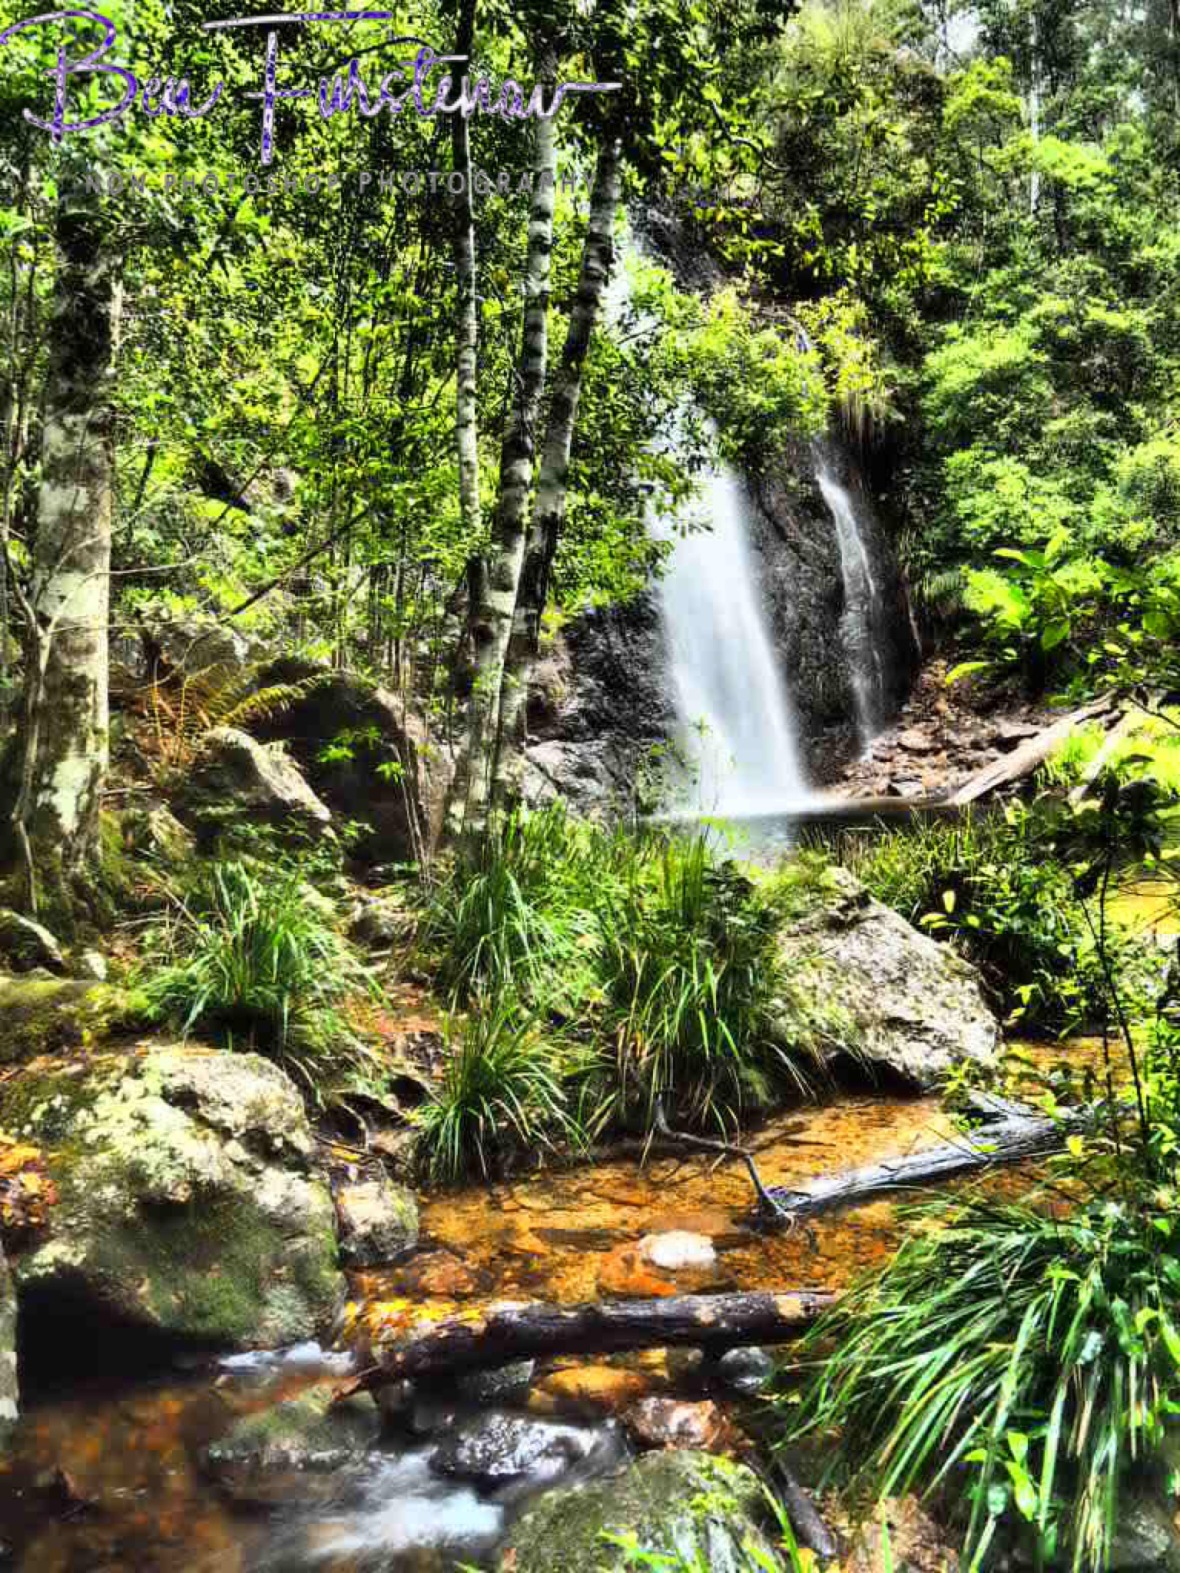 Green surroundings at Boundry Falls, Washpool National Park, NSW, Australia